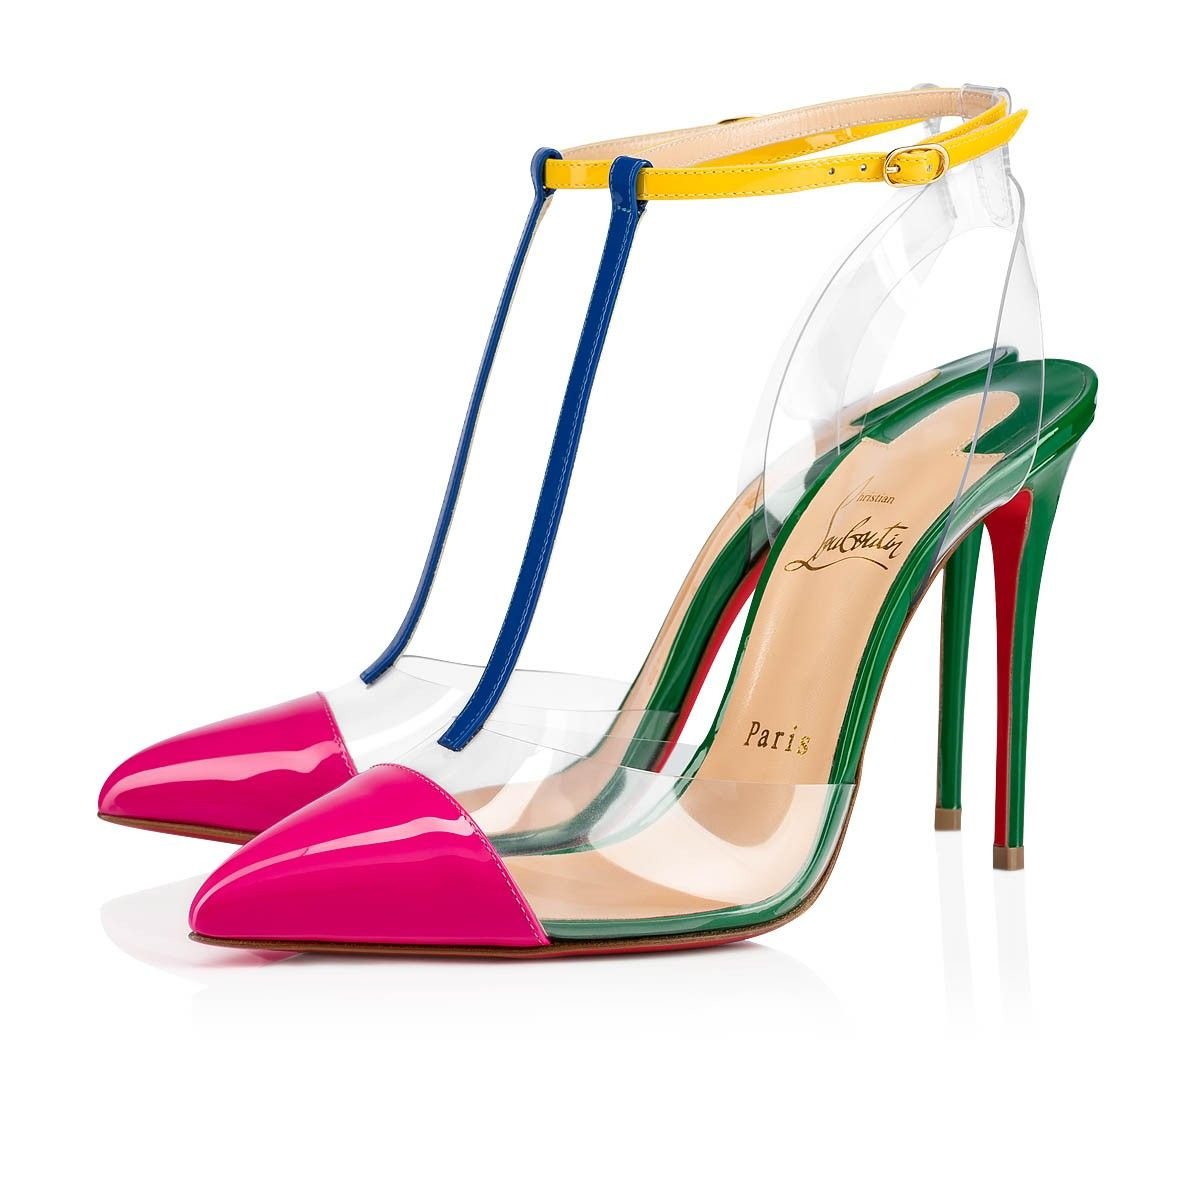 The Nosy Pump Displays Its Eclectic Colors With Audacity Set On A 100mm Heel The Model Features Mixed Multi Col Leather Shoes Woman Christian Louboutin Heels